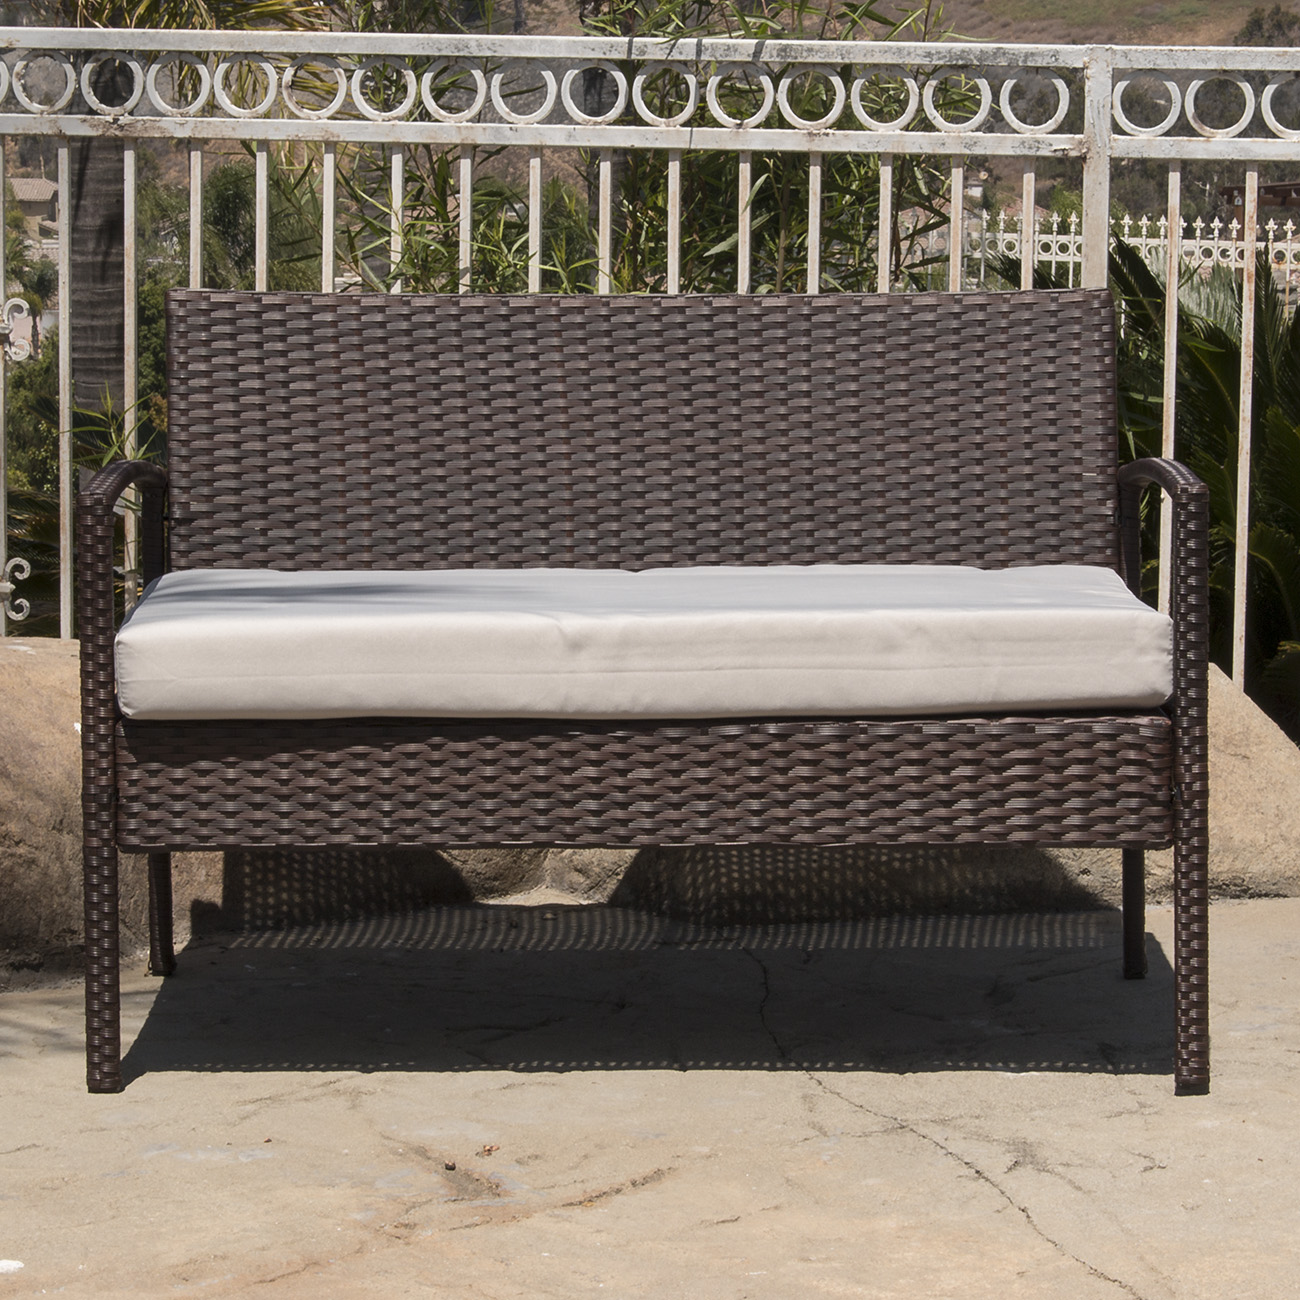 4PC Rattan Wicker Patio Furniture Set Sofa Chair Table Cushioned